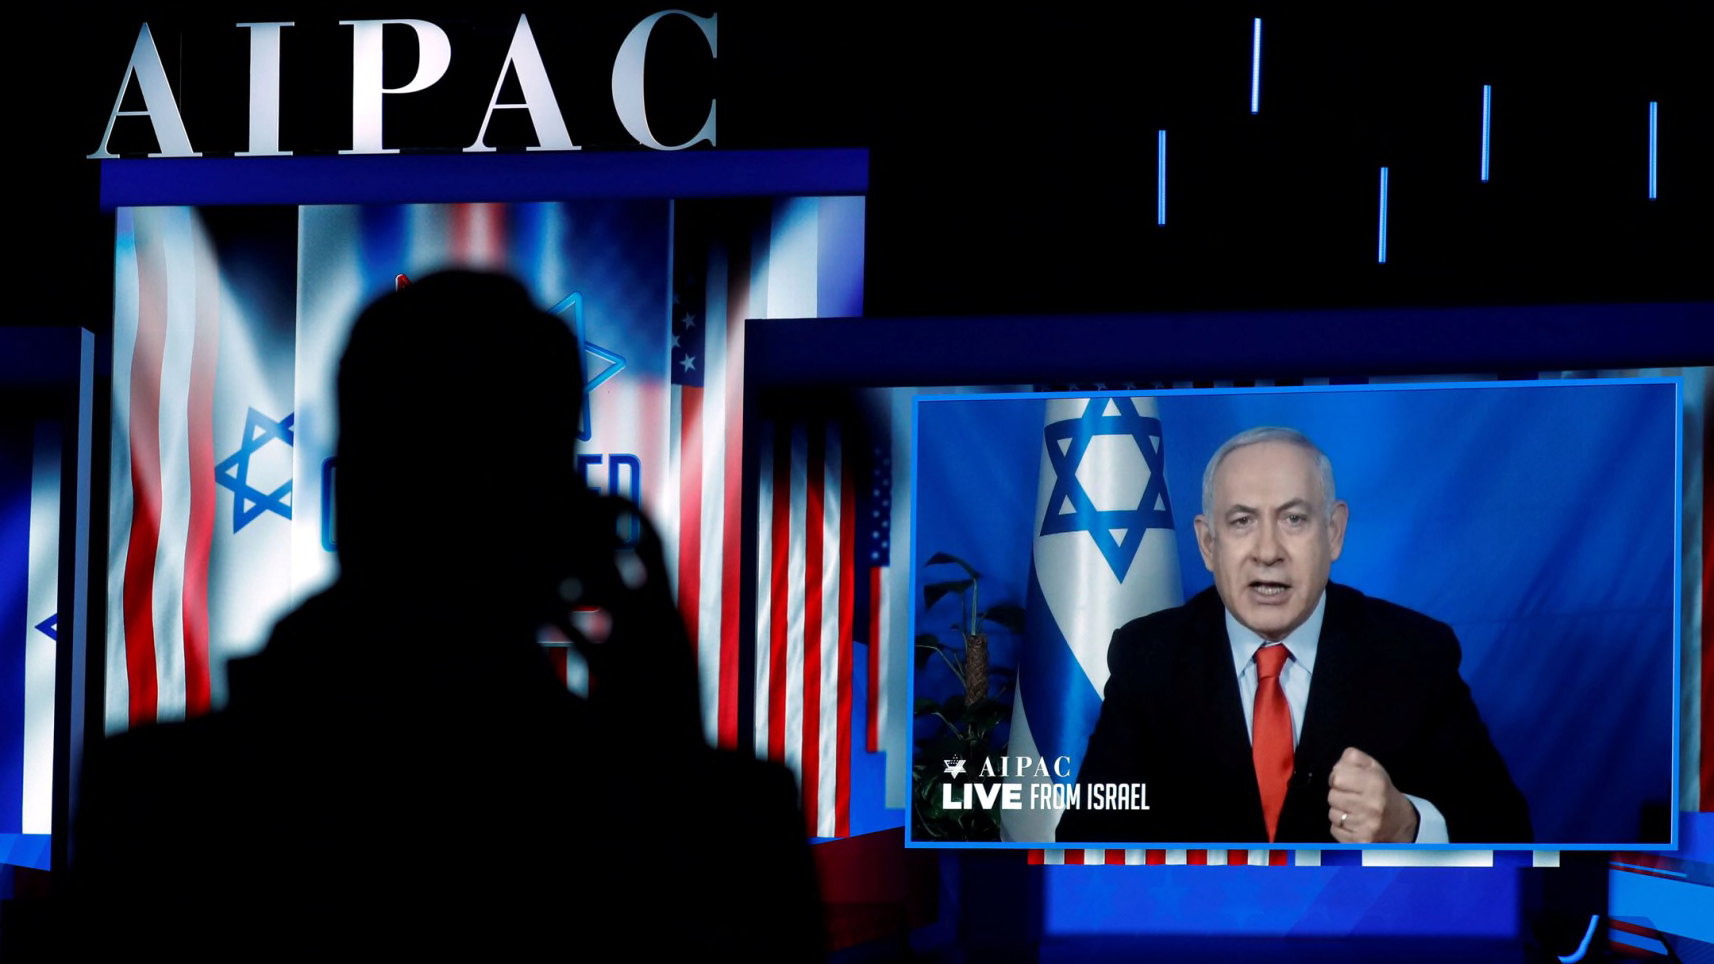 Where's the outrage over Netanyahu trying to interfere in the US election?